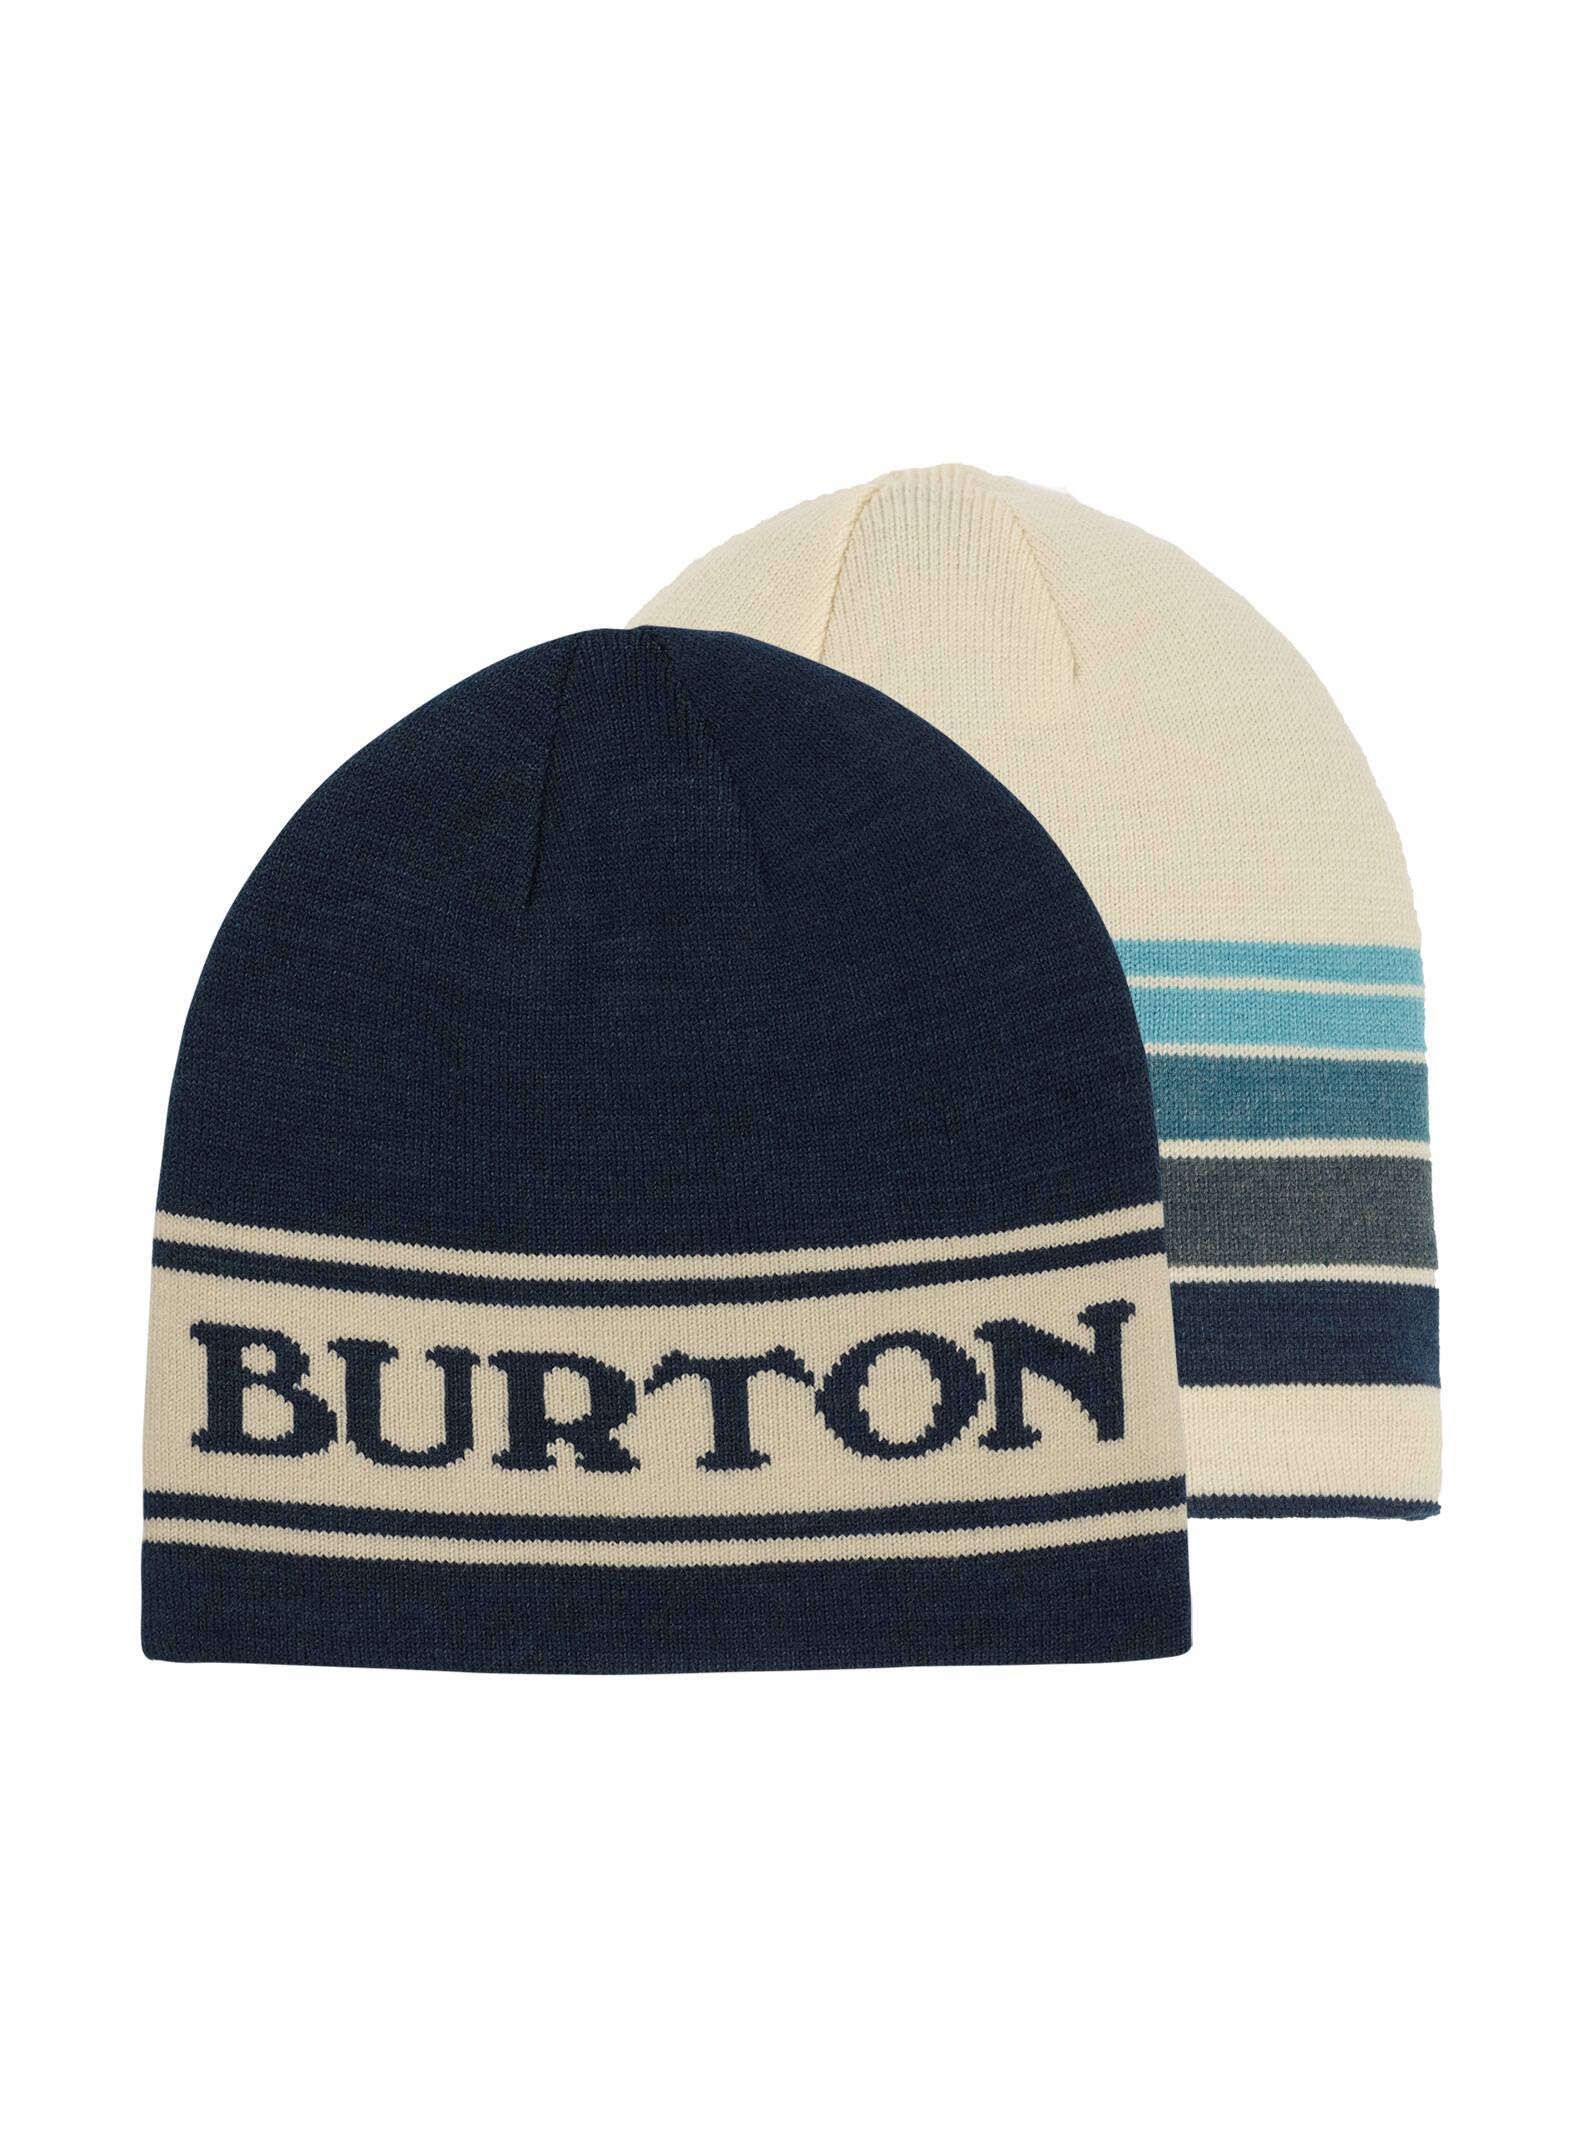 Burton Billboard Beanie- Almond Milk